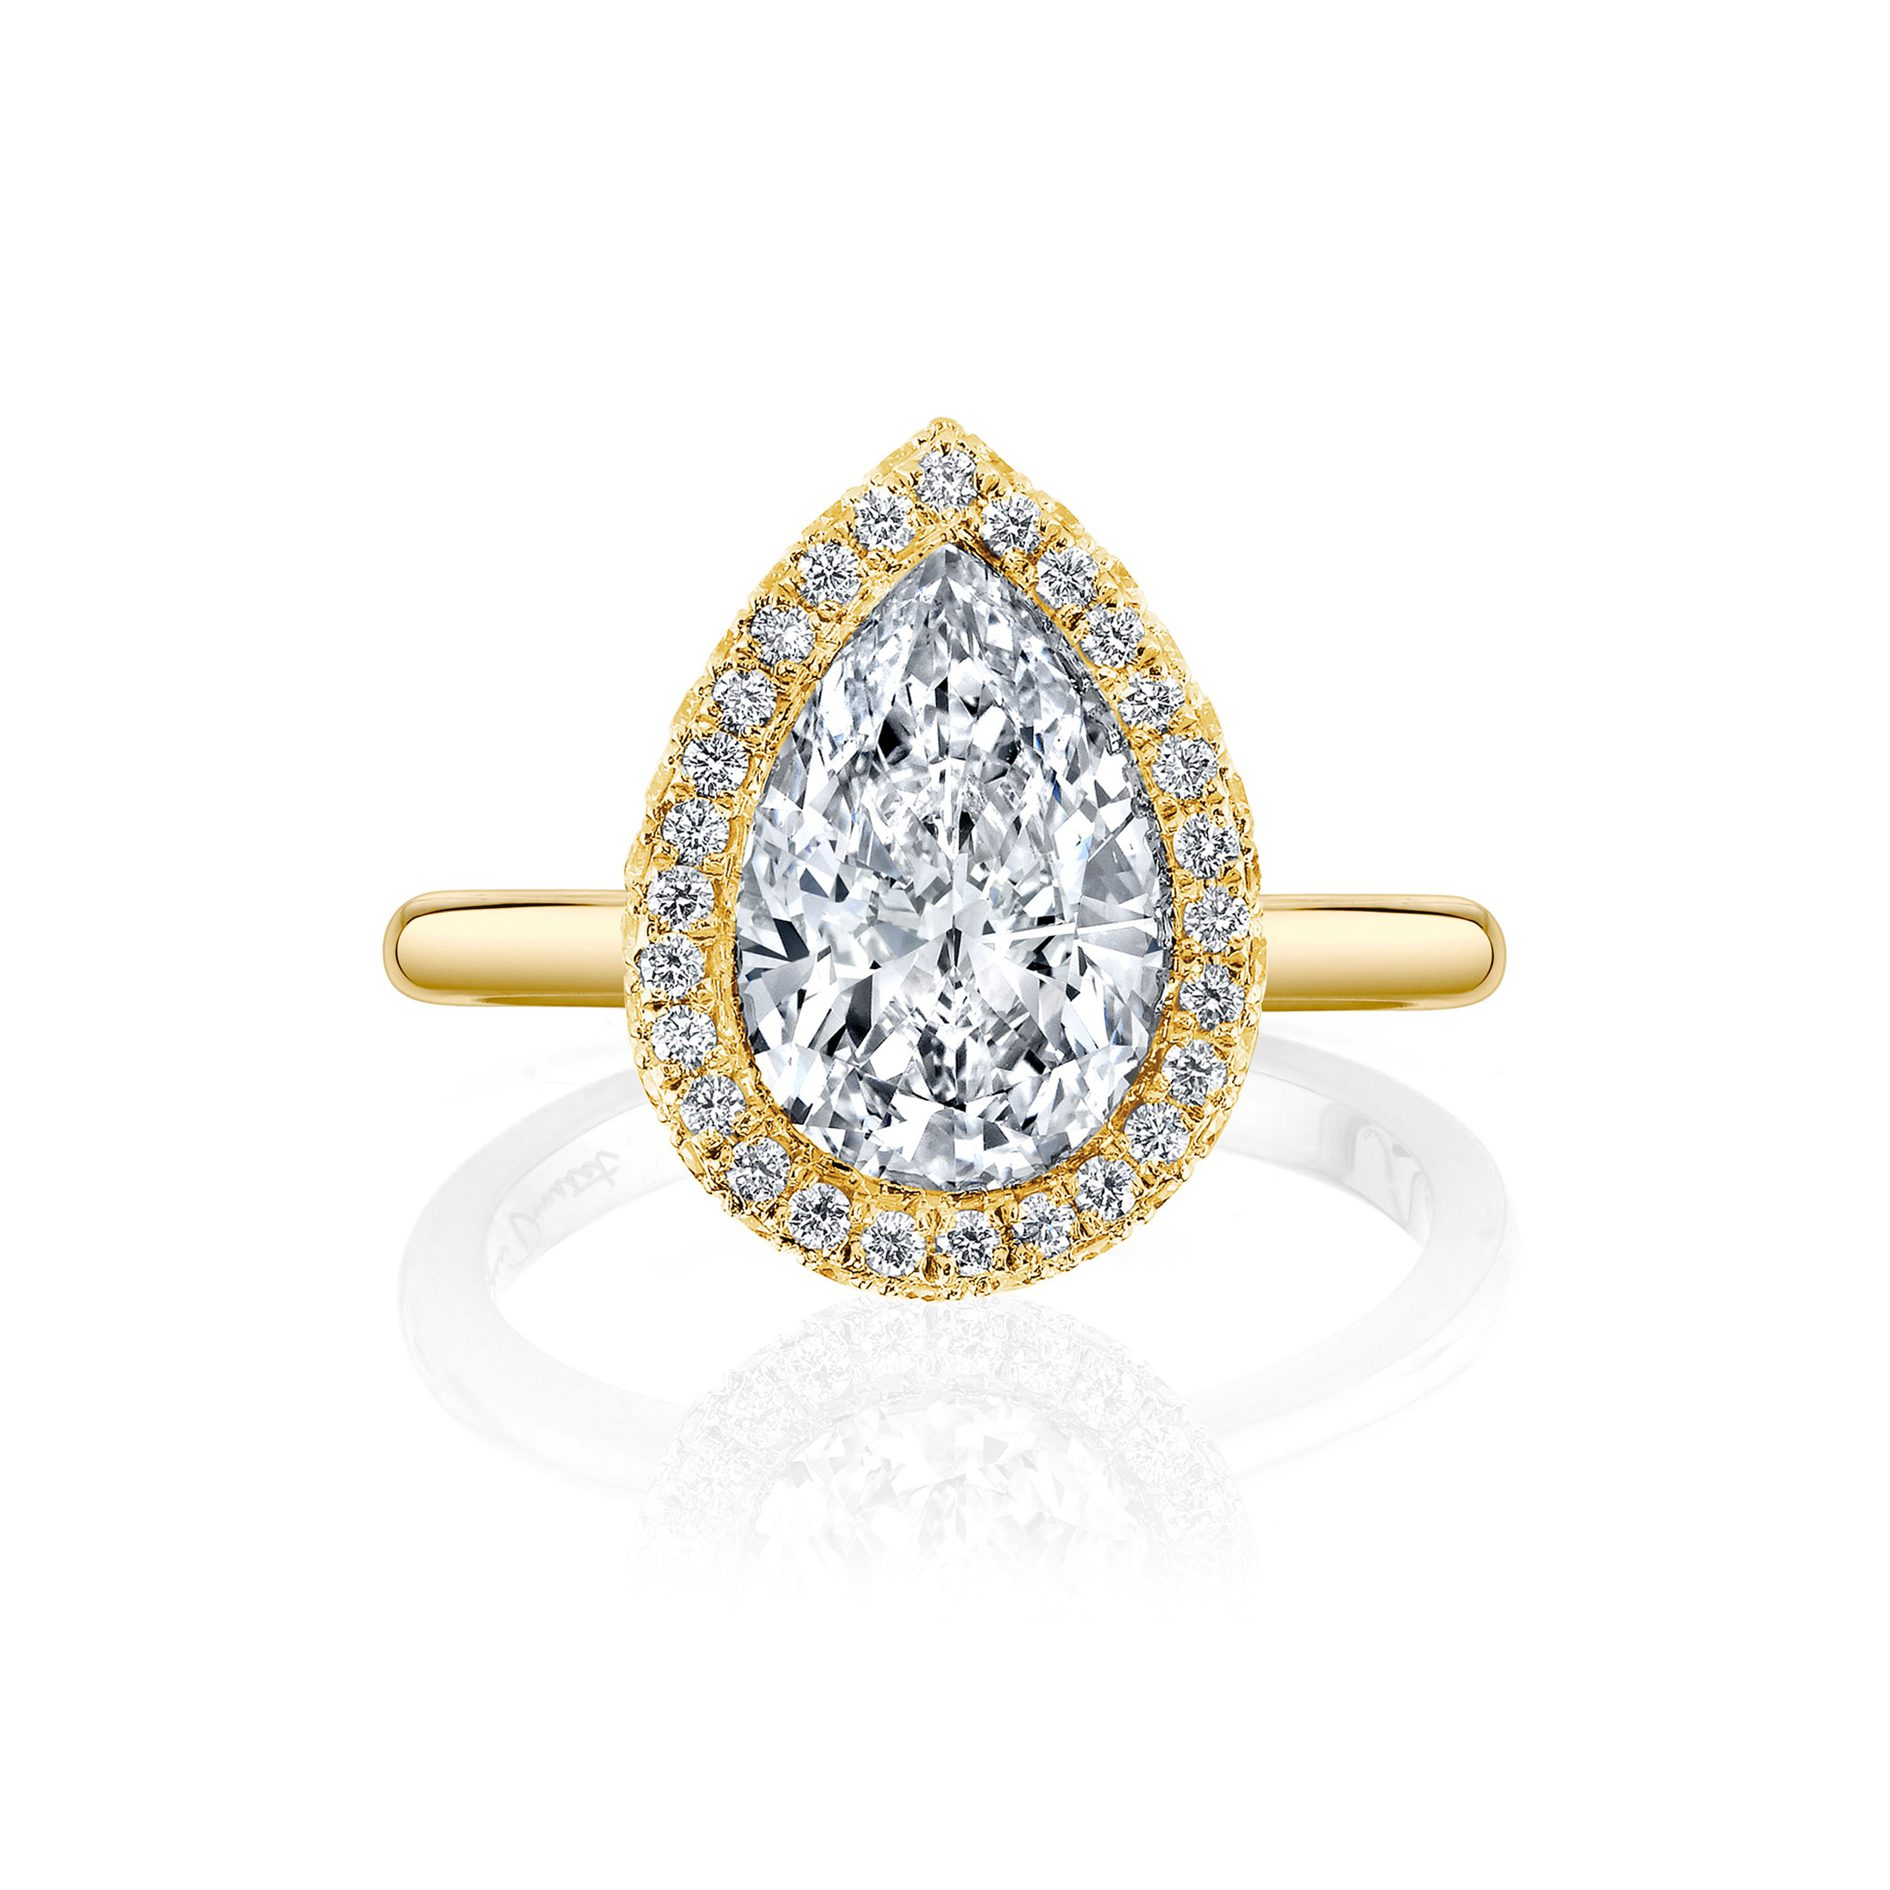 Colette Seamless Halo® Pear Cut Engagement Ring Yellow Gold Solid Band